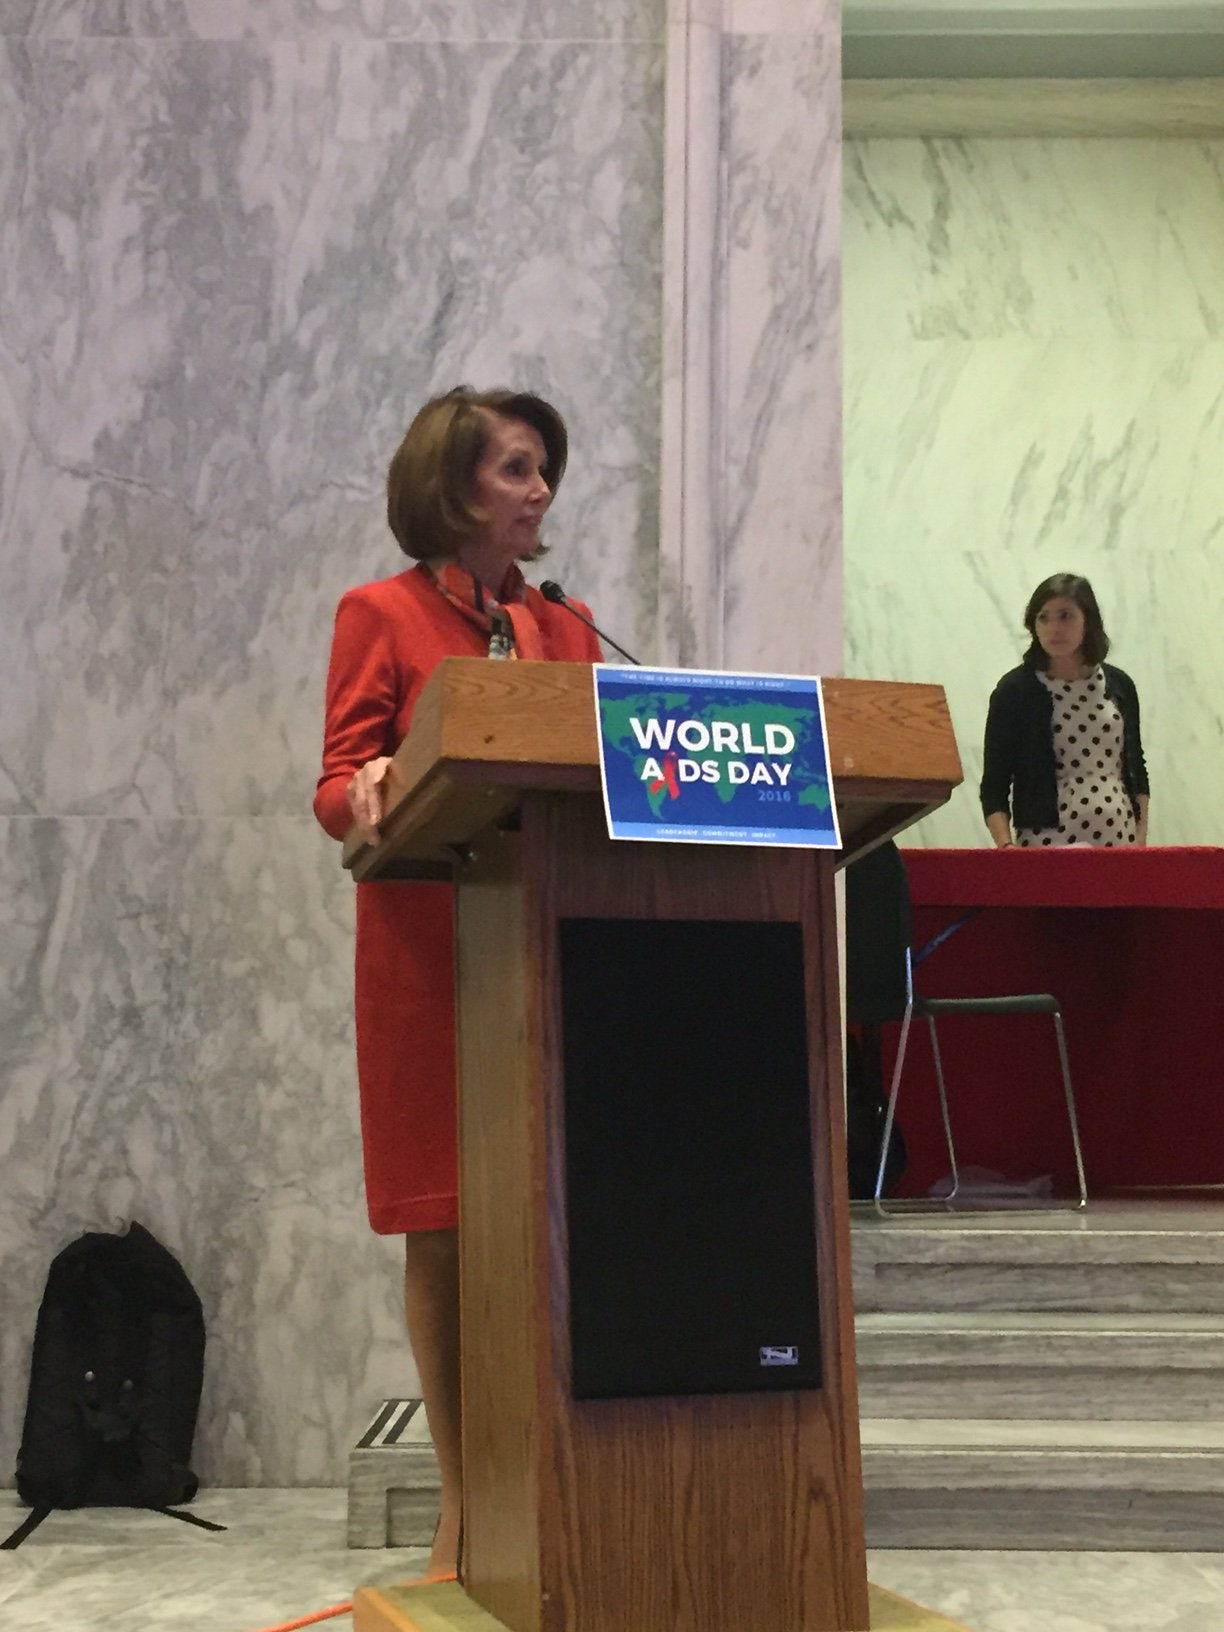 In honor of World #AIDS Day, @NancyPelosi urges us to make AIDS a distant memory. We can end this epidemic together. #WAD2016 https://t.co/uvVuWLGdHN